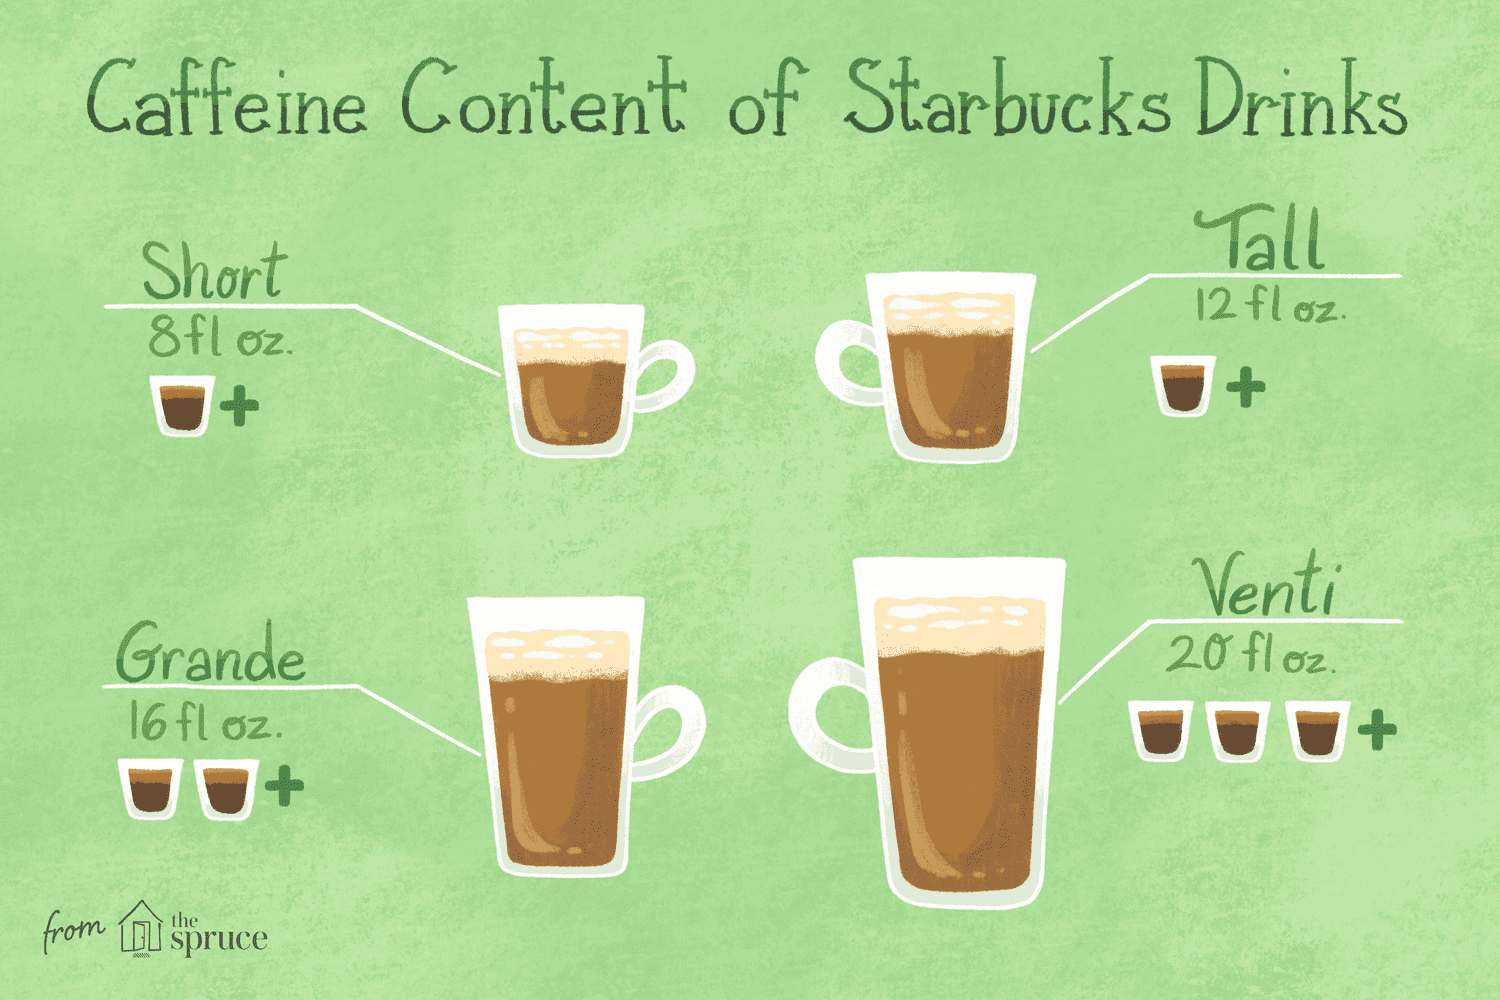 How Much Caffeine Is In Starbucks Coffee Drinks